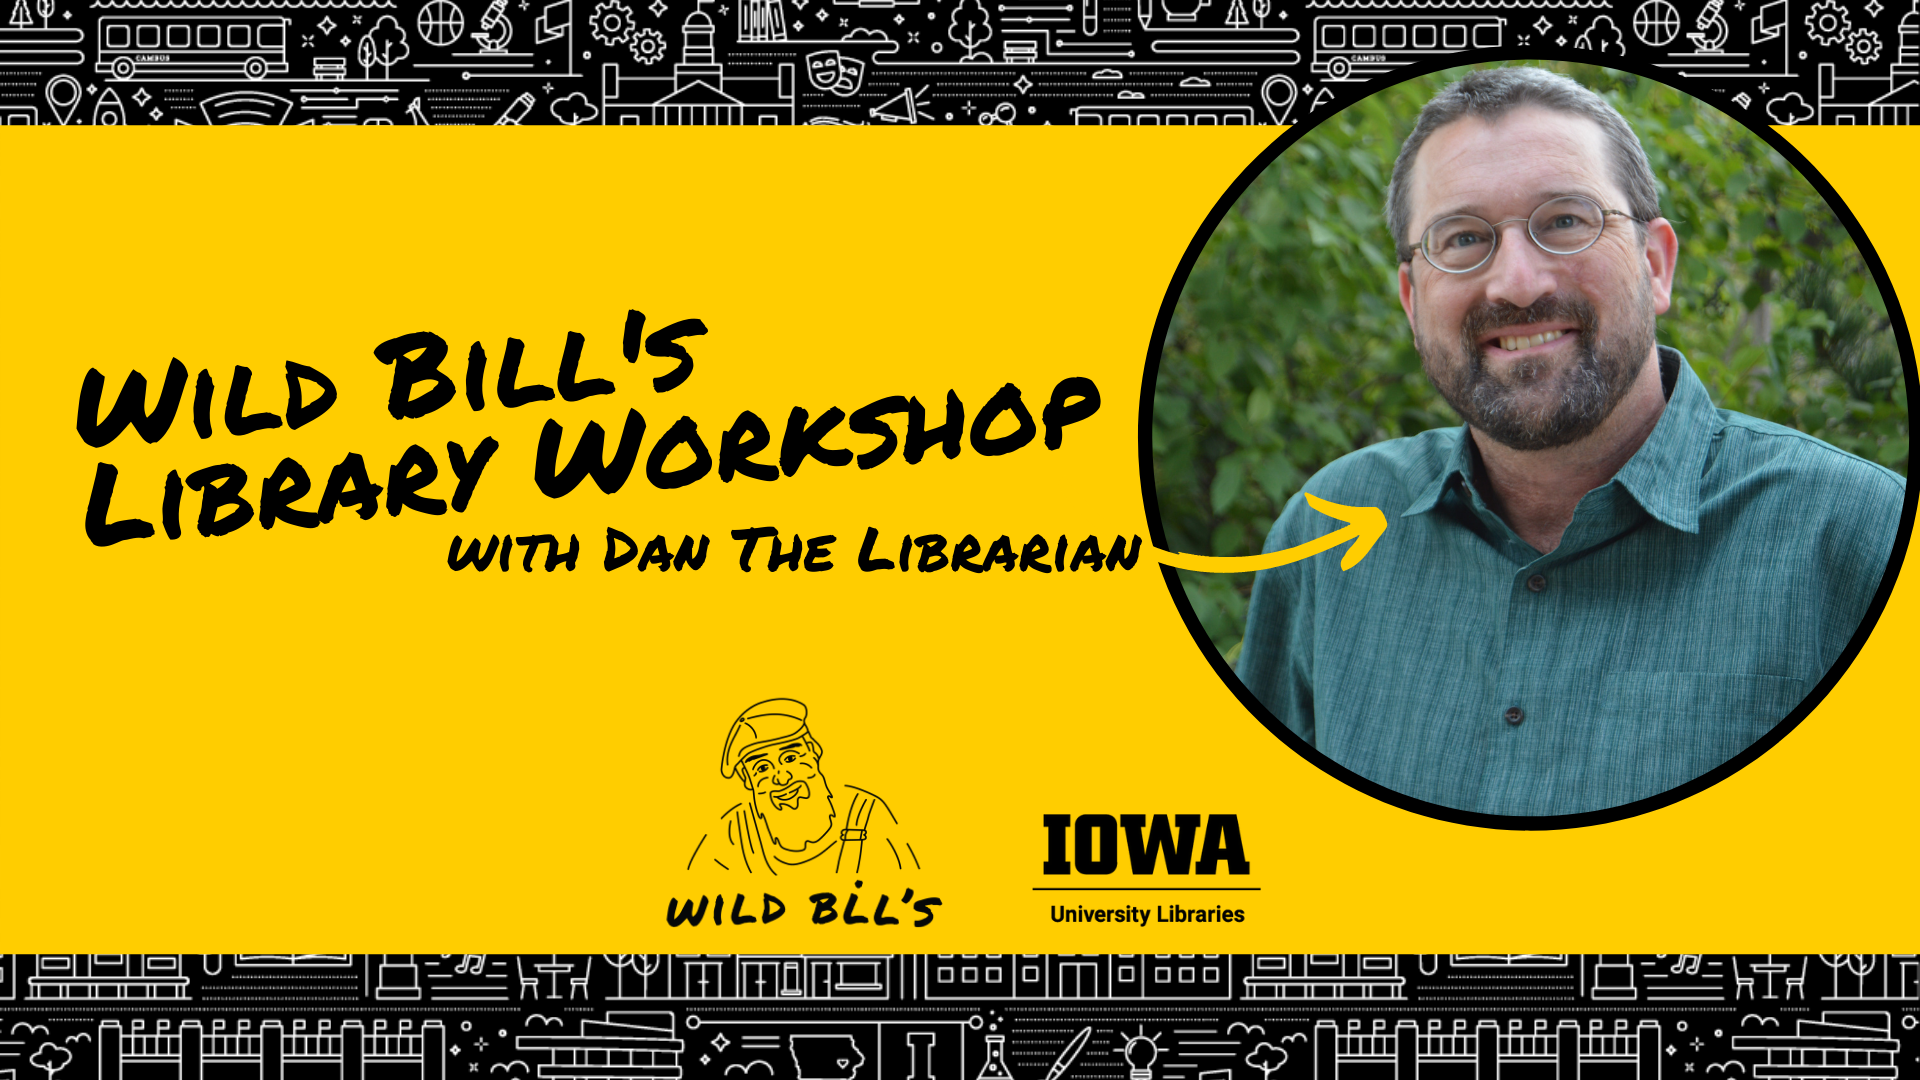 Wild Bill's Library Workshop with Dan Gall